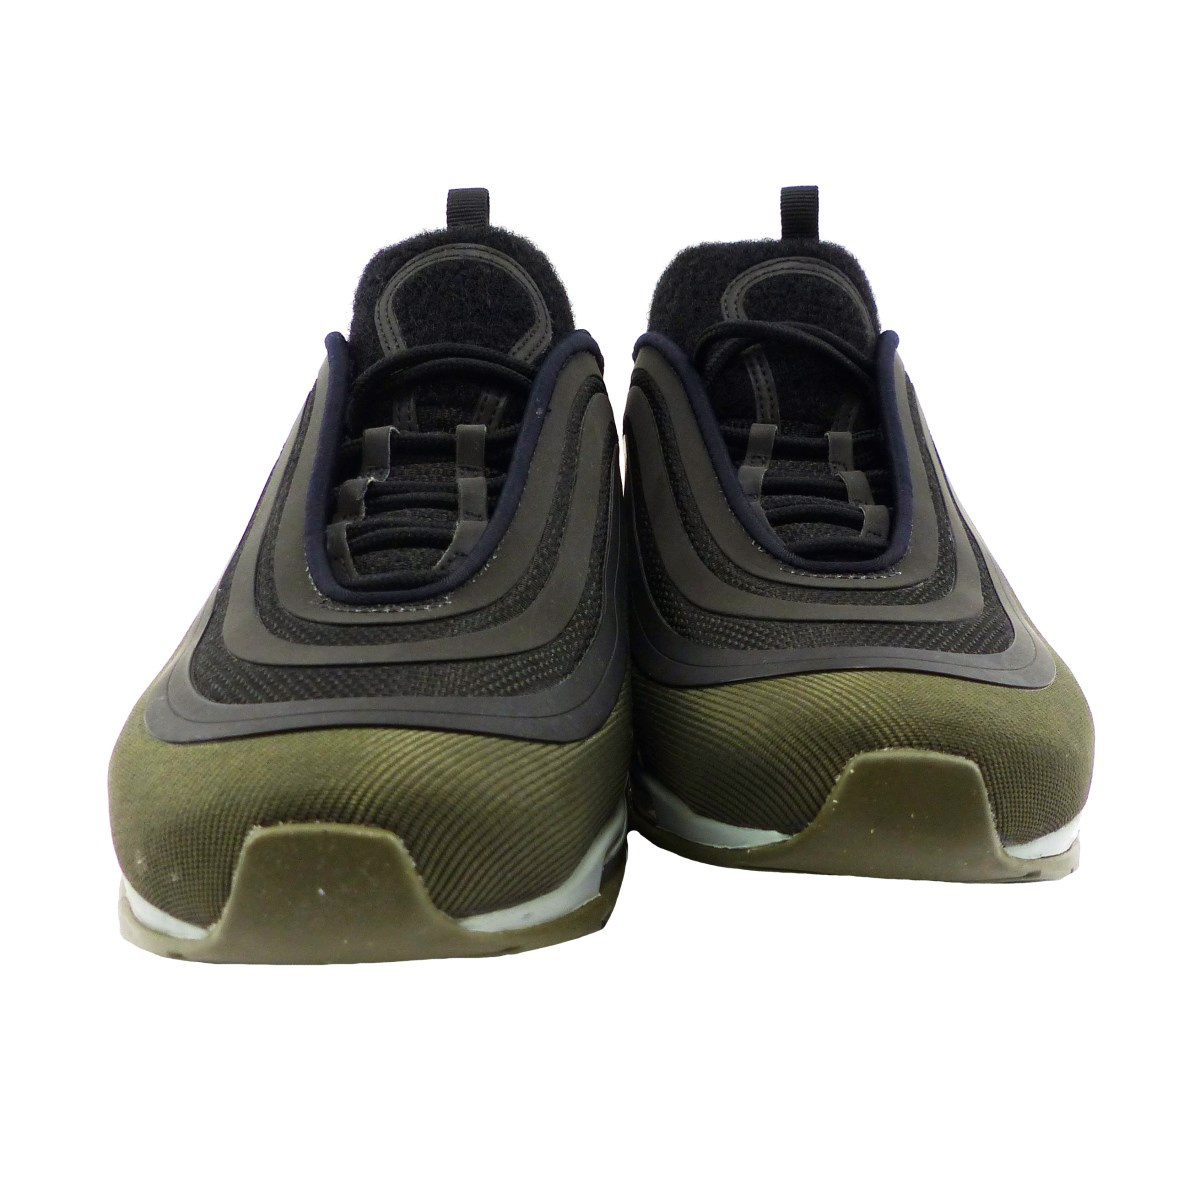 low priced 54569 713ea NIKE AIR MAX 97 ULTRA HAL sneakers green size: 27. 5cm (Nike)